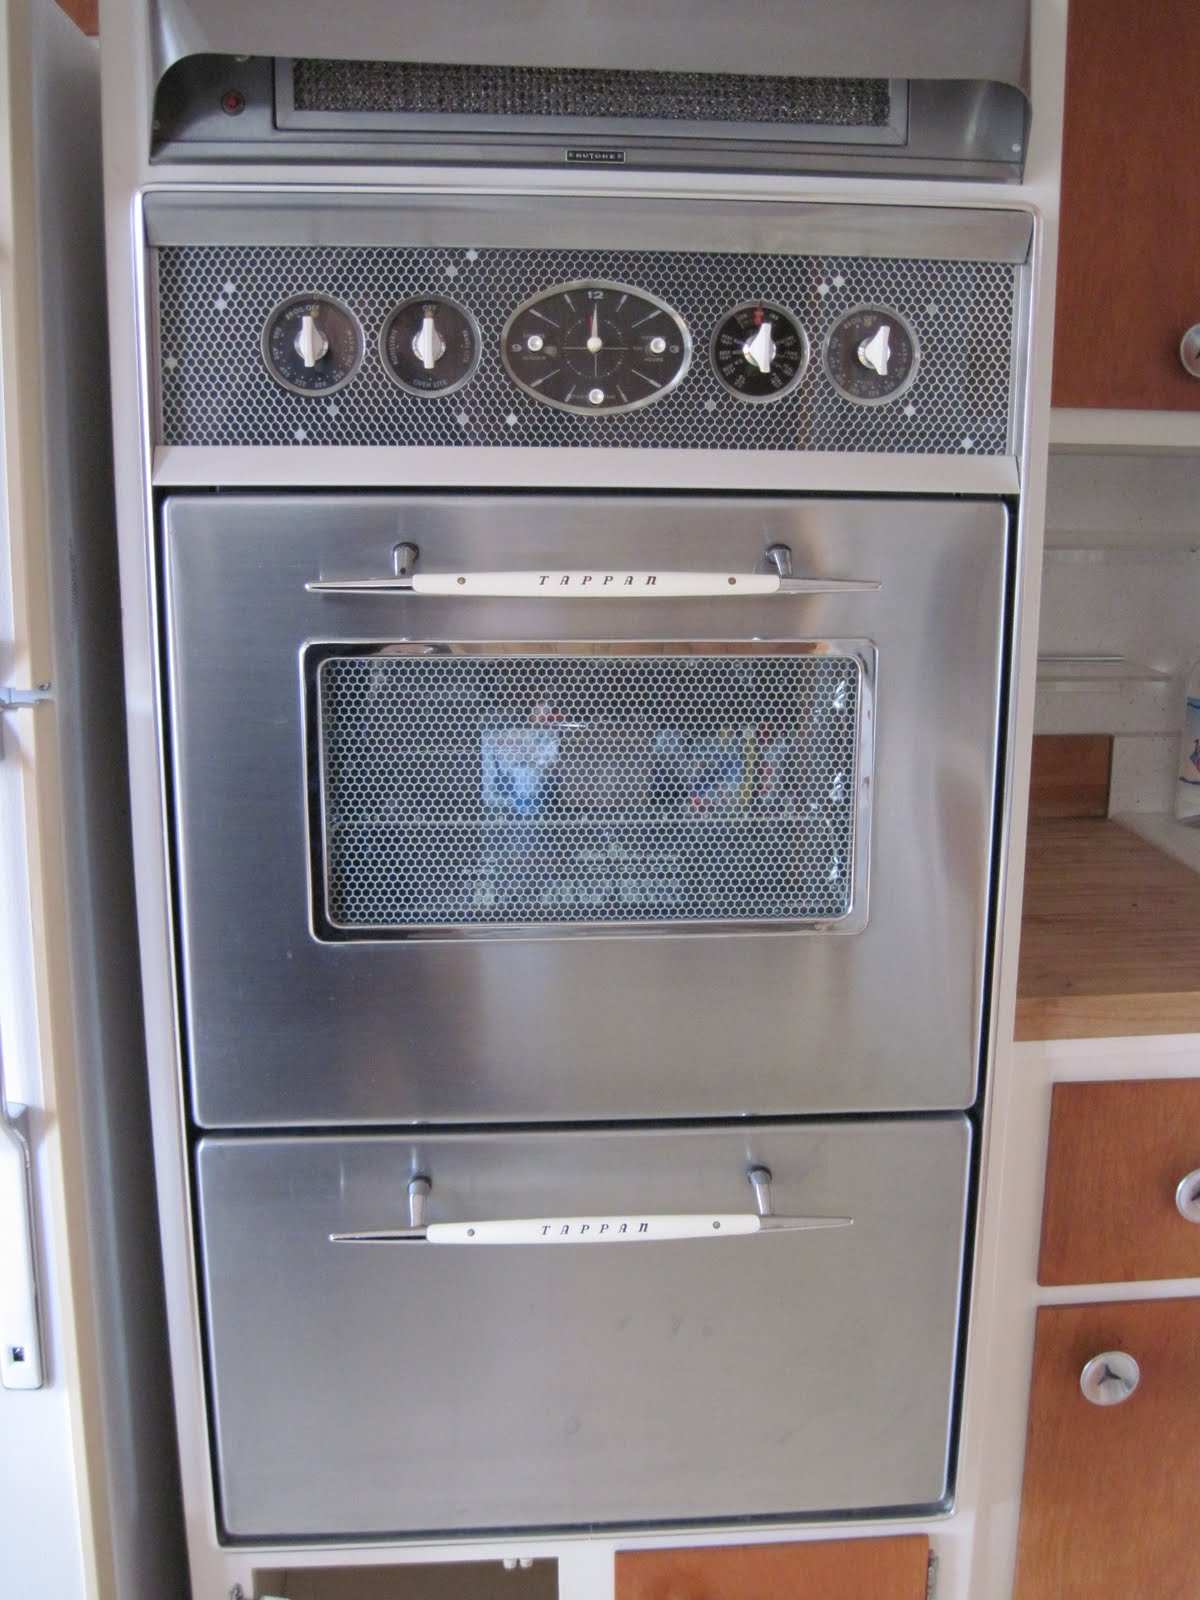 Tappan Built In Ovens Electric ~ Tappan wall oven manual bing images